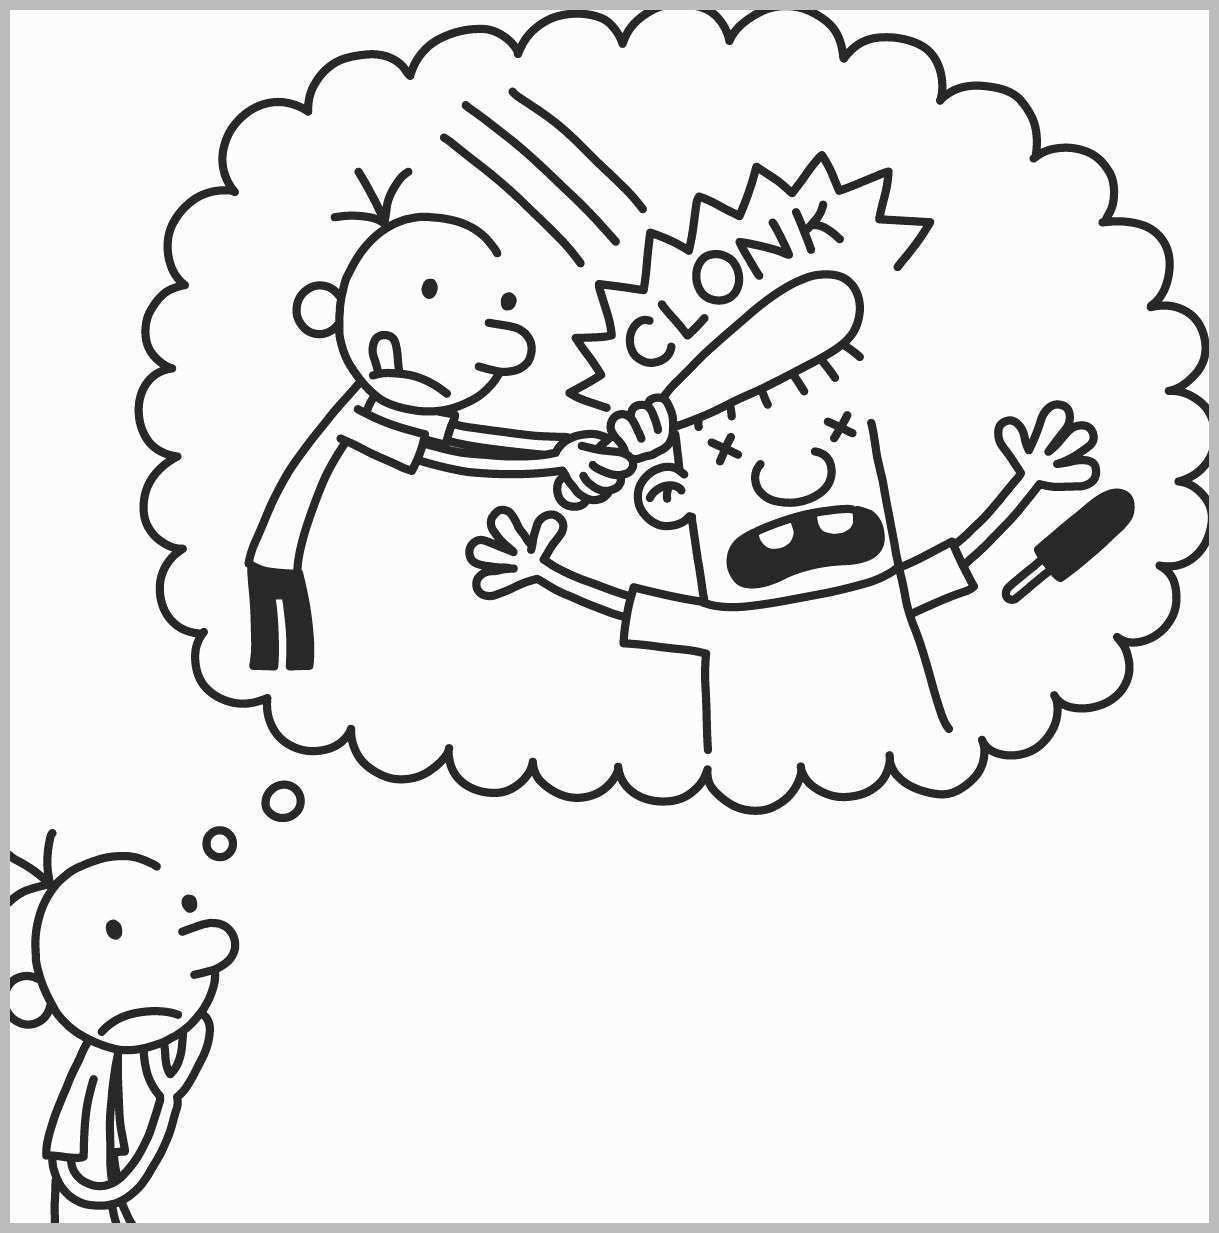 Diary Of A Wimpy Kid Coloring Pages Free Http Www Wallpaperartdesignhd Us Diary Of A Wimpy Kid Coloring Pages Free Wimpy Kid Coloring For Kids Coloring Pages